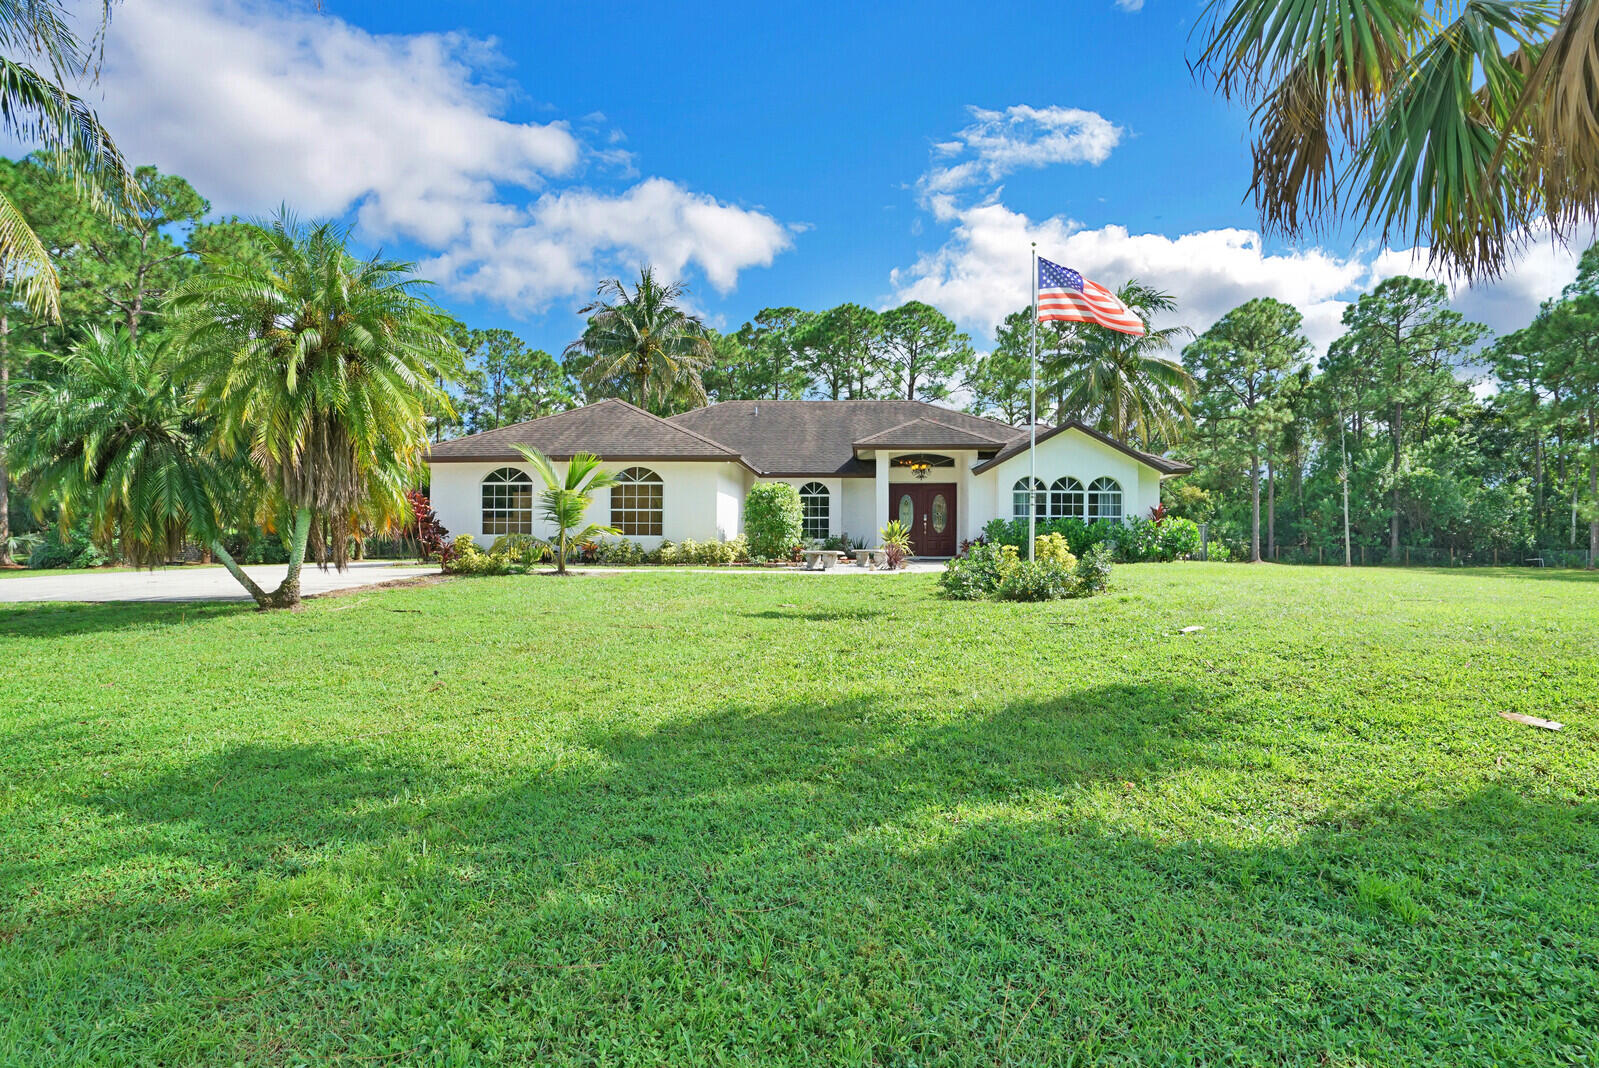 Home for sale in Loxahatchee   Unincorporated The Acreage Florida